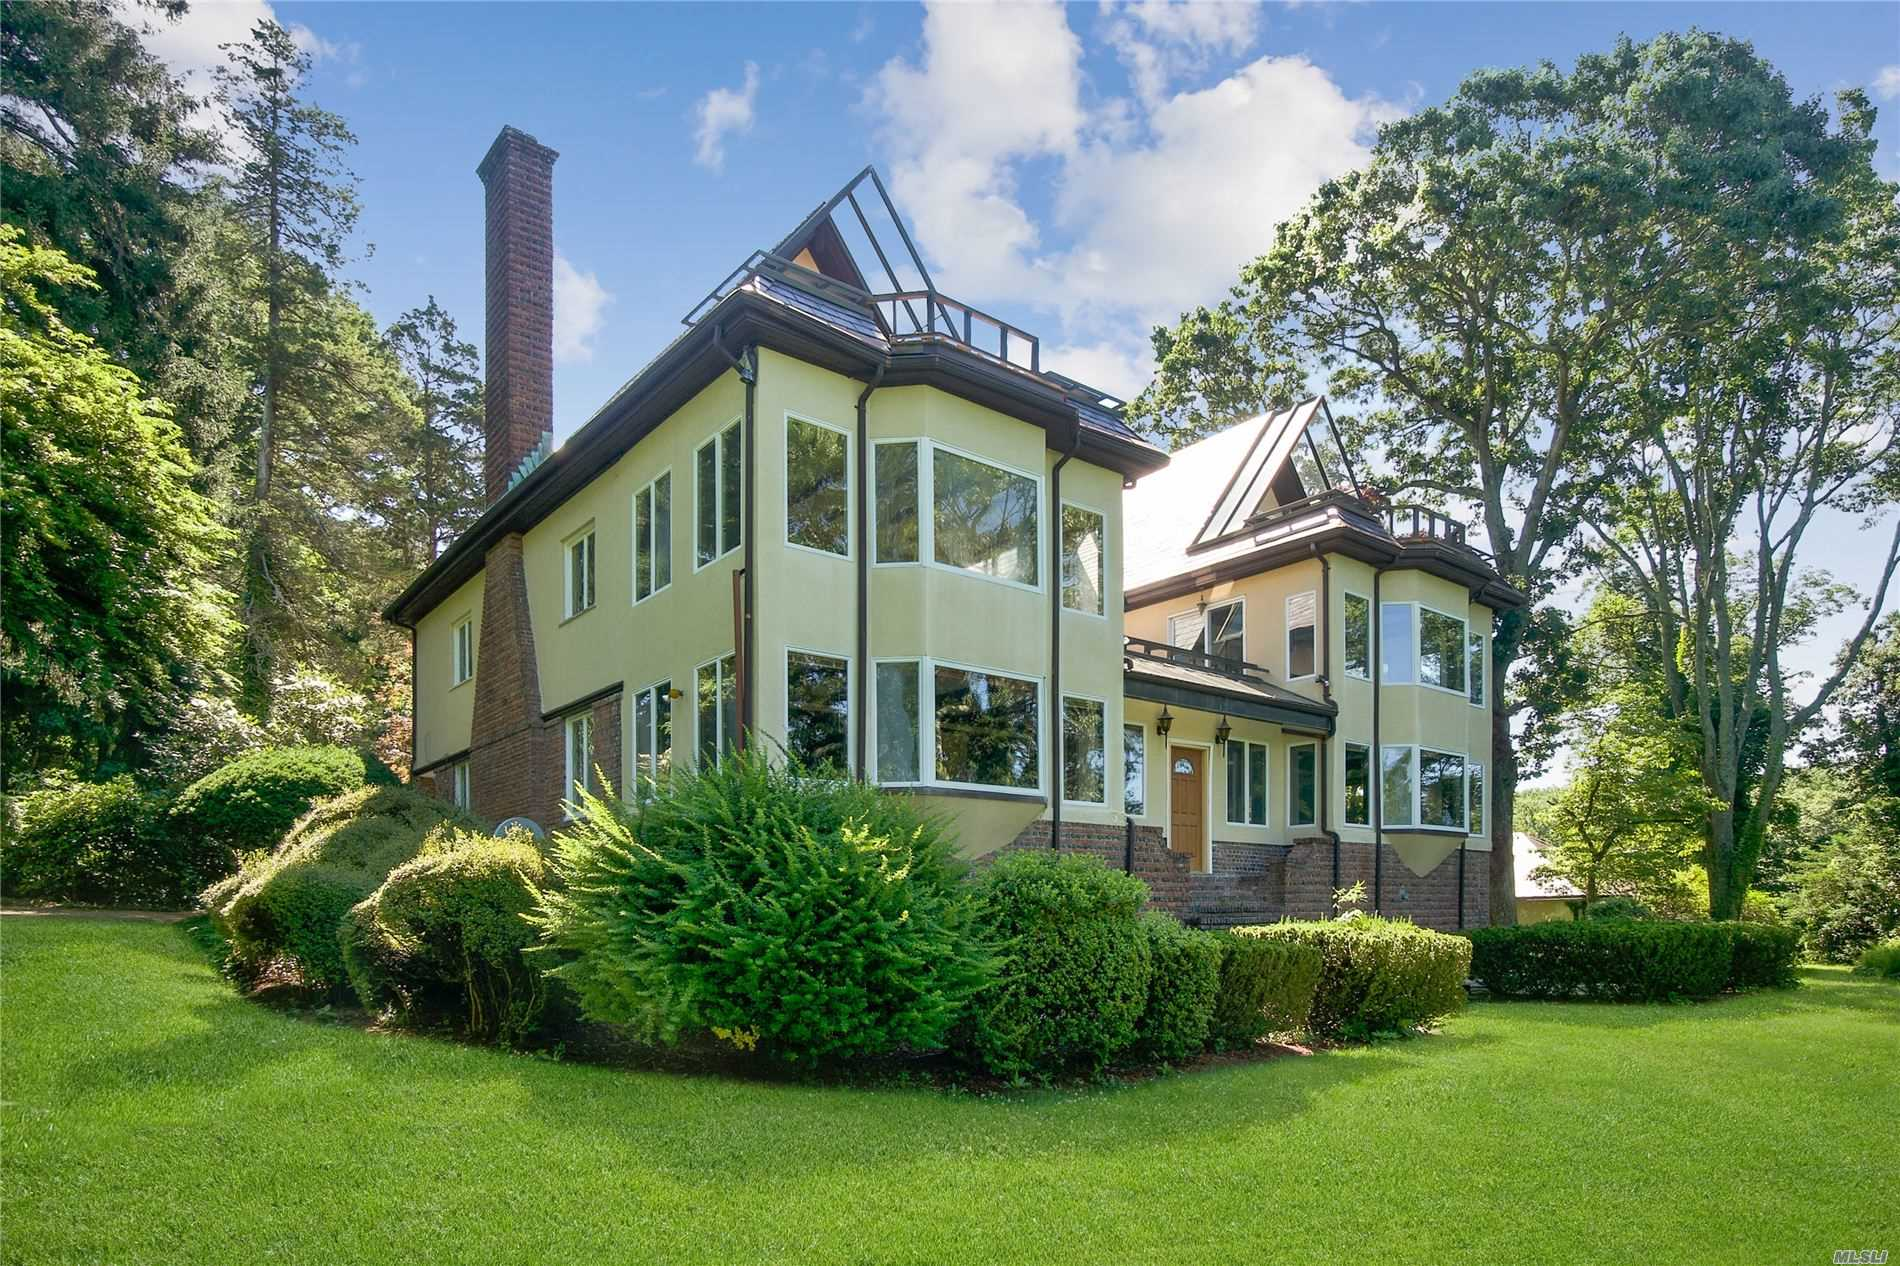 32 Lower Devon Rd - Port Jefferson, New York